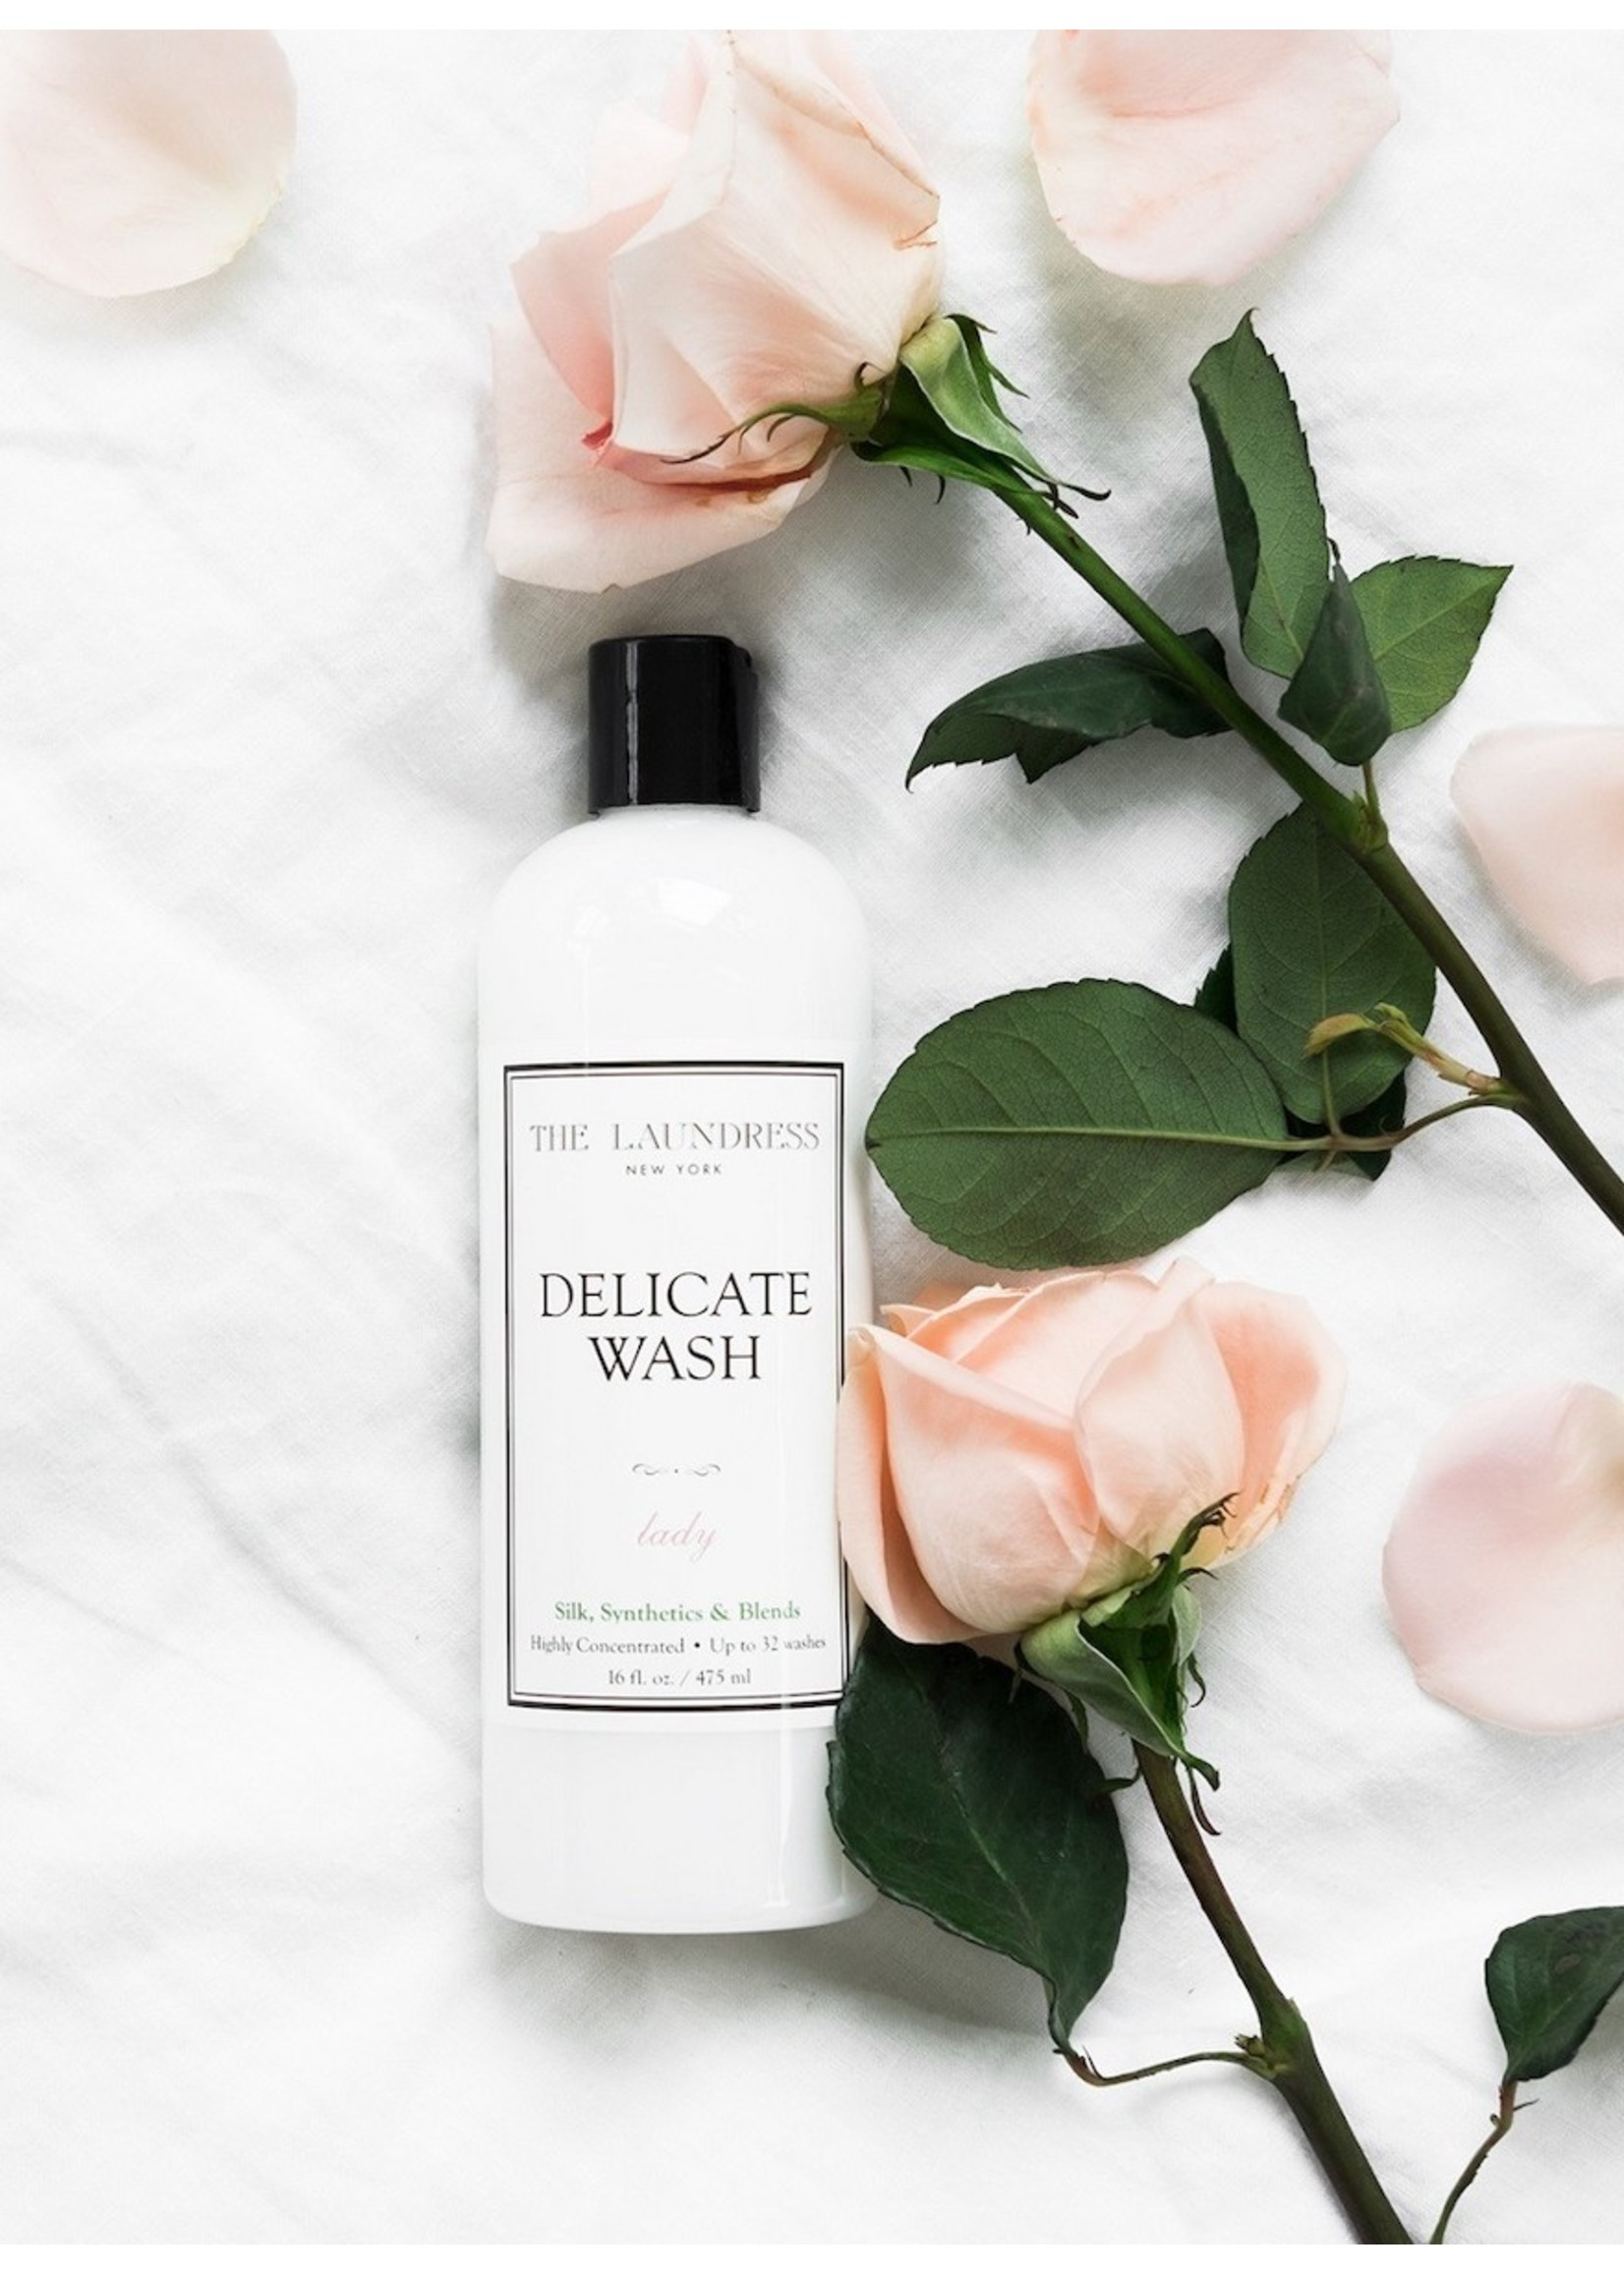 The Laundress New York Delicate Wash